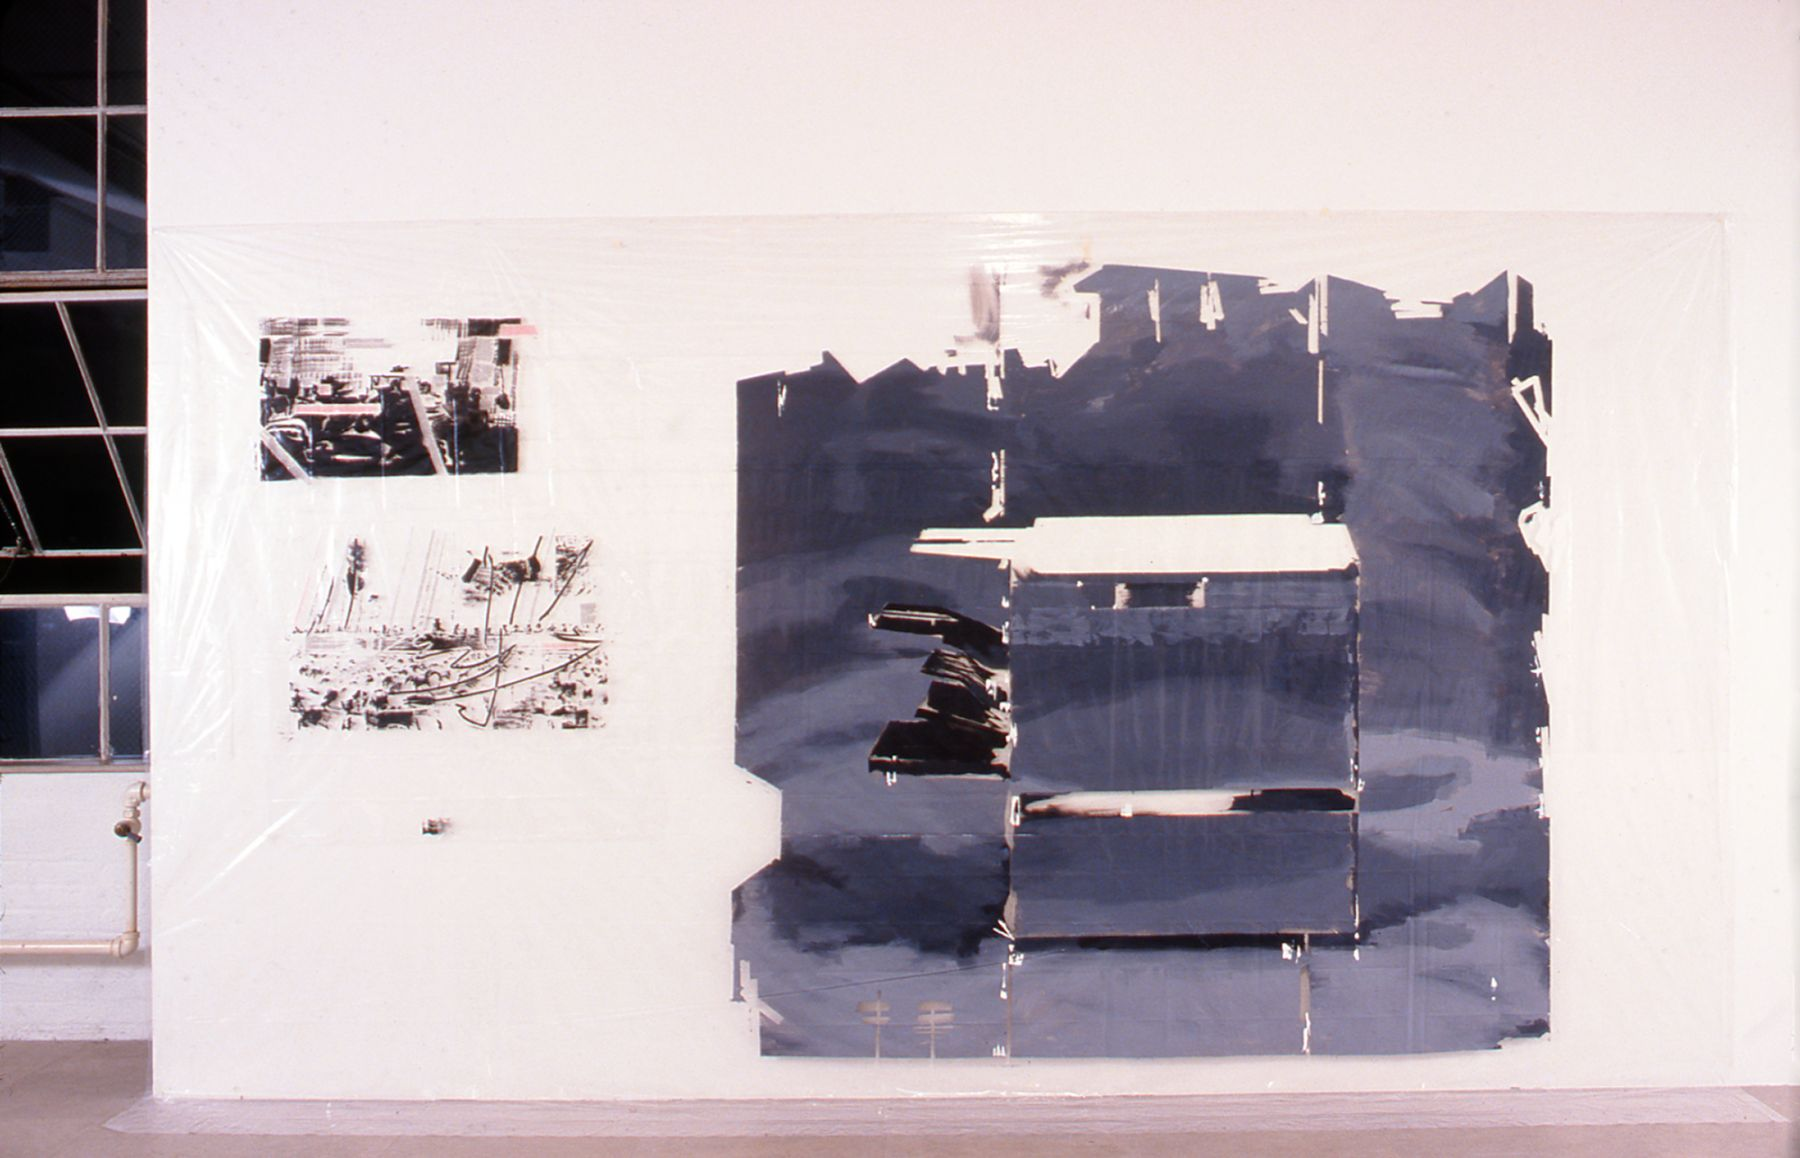 Dierk Schmidt,  Two Papers for Copy Machine, 1999, Oil and acrylic on plastic, 106 x 168 inches